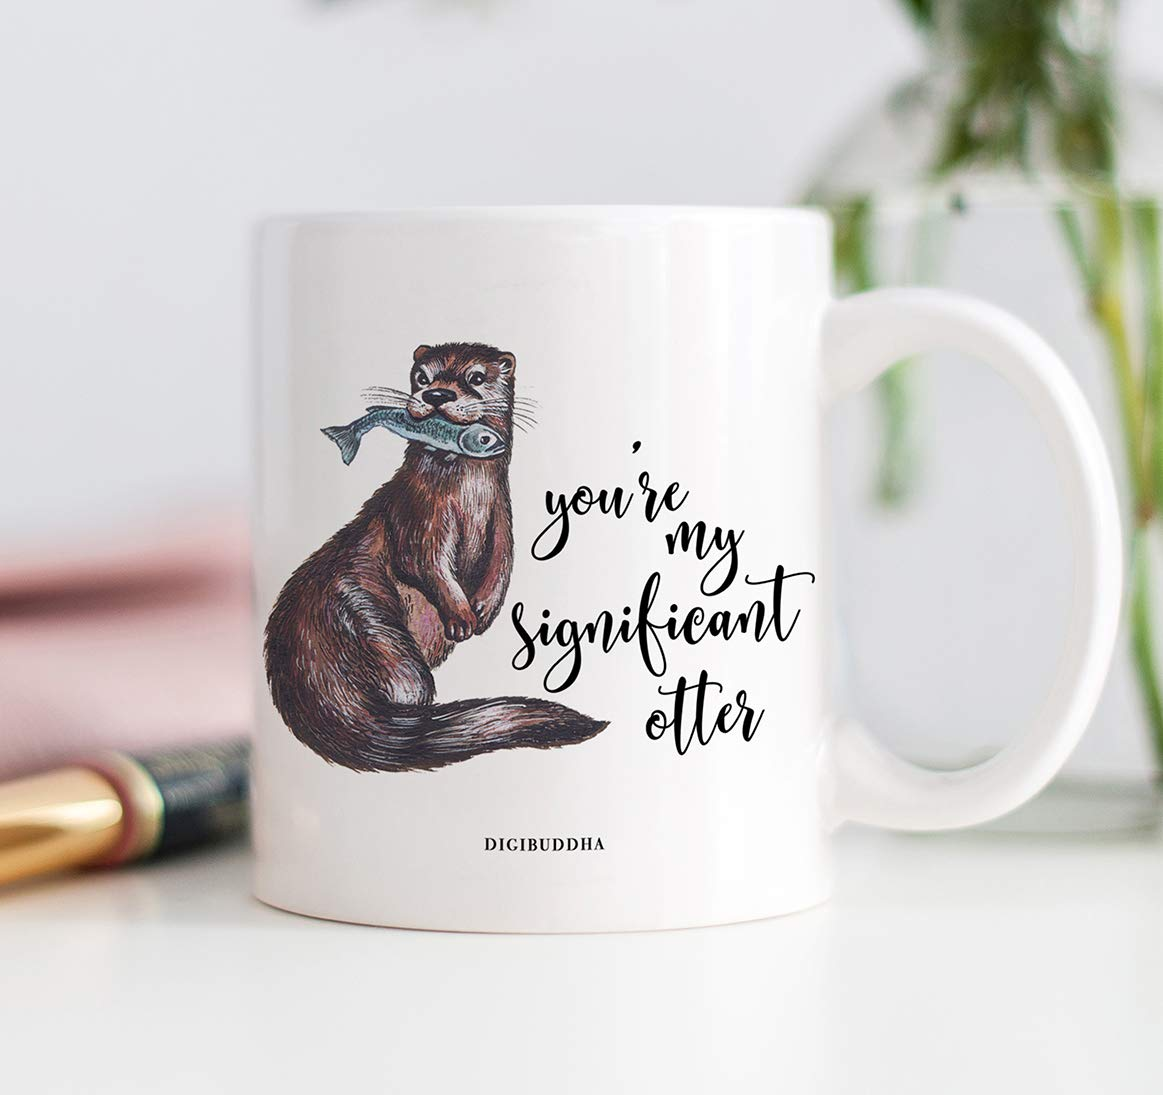 Cute Significant Otter Coffee Mug Gift Idea Special Love Wedding Anniversary Christmas Present for Girlfriend Boyfriend Spouse Husband Wife Partner 11oz Ceramic Beverage Tea Cup by Digibuddha DM0472